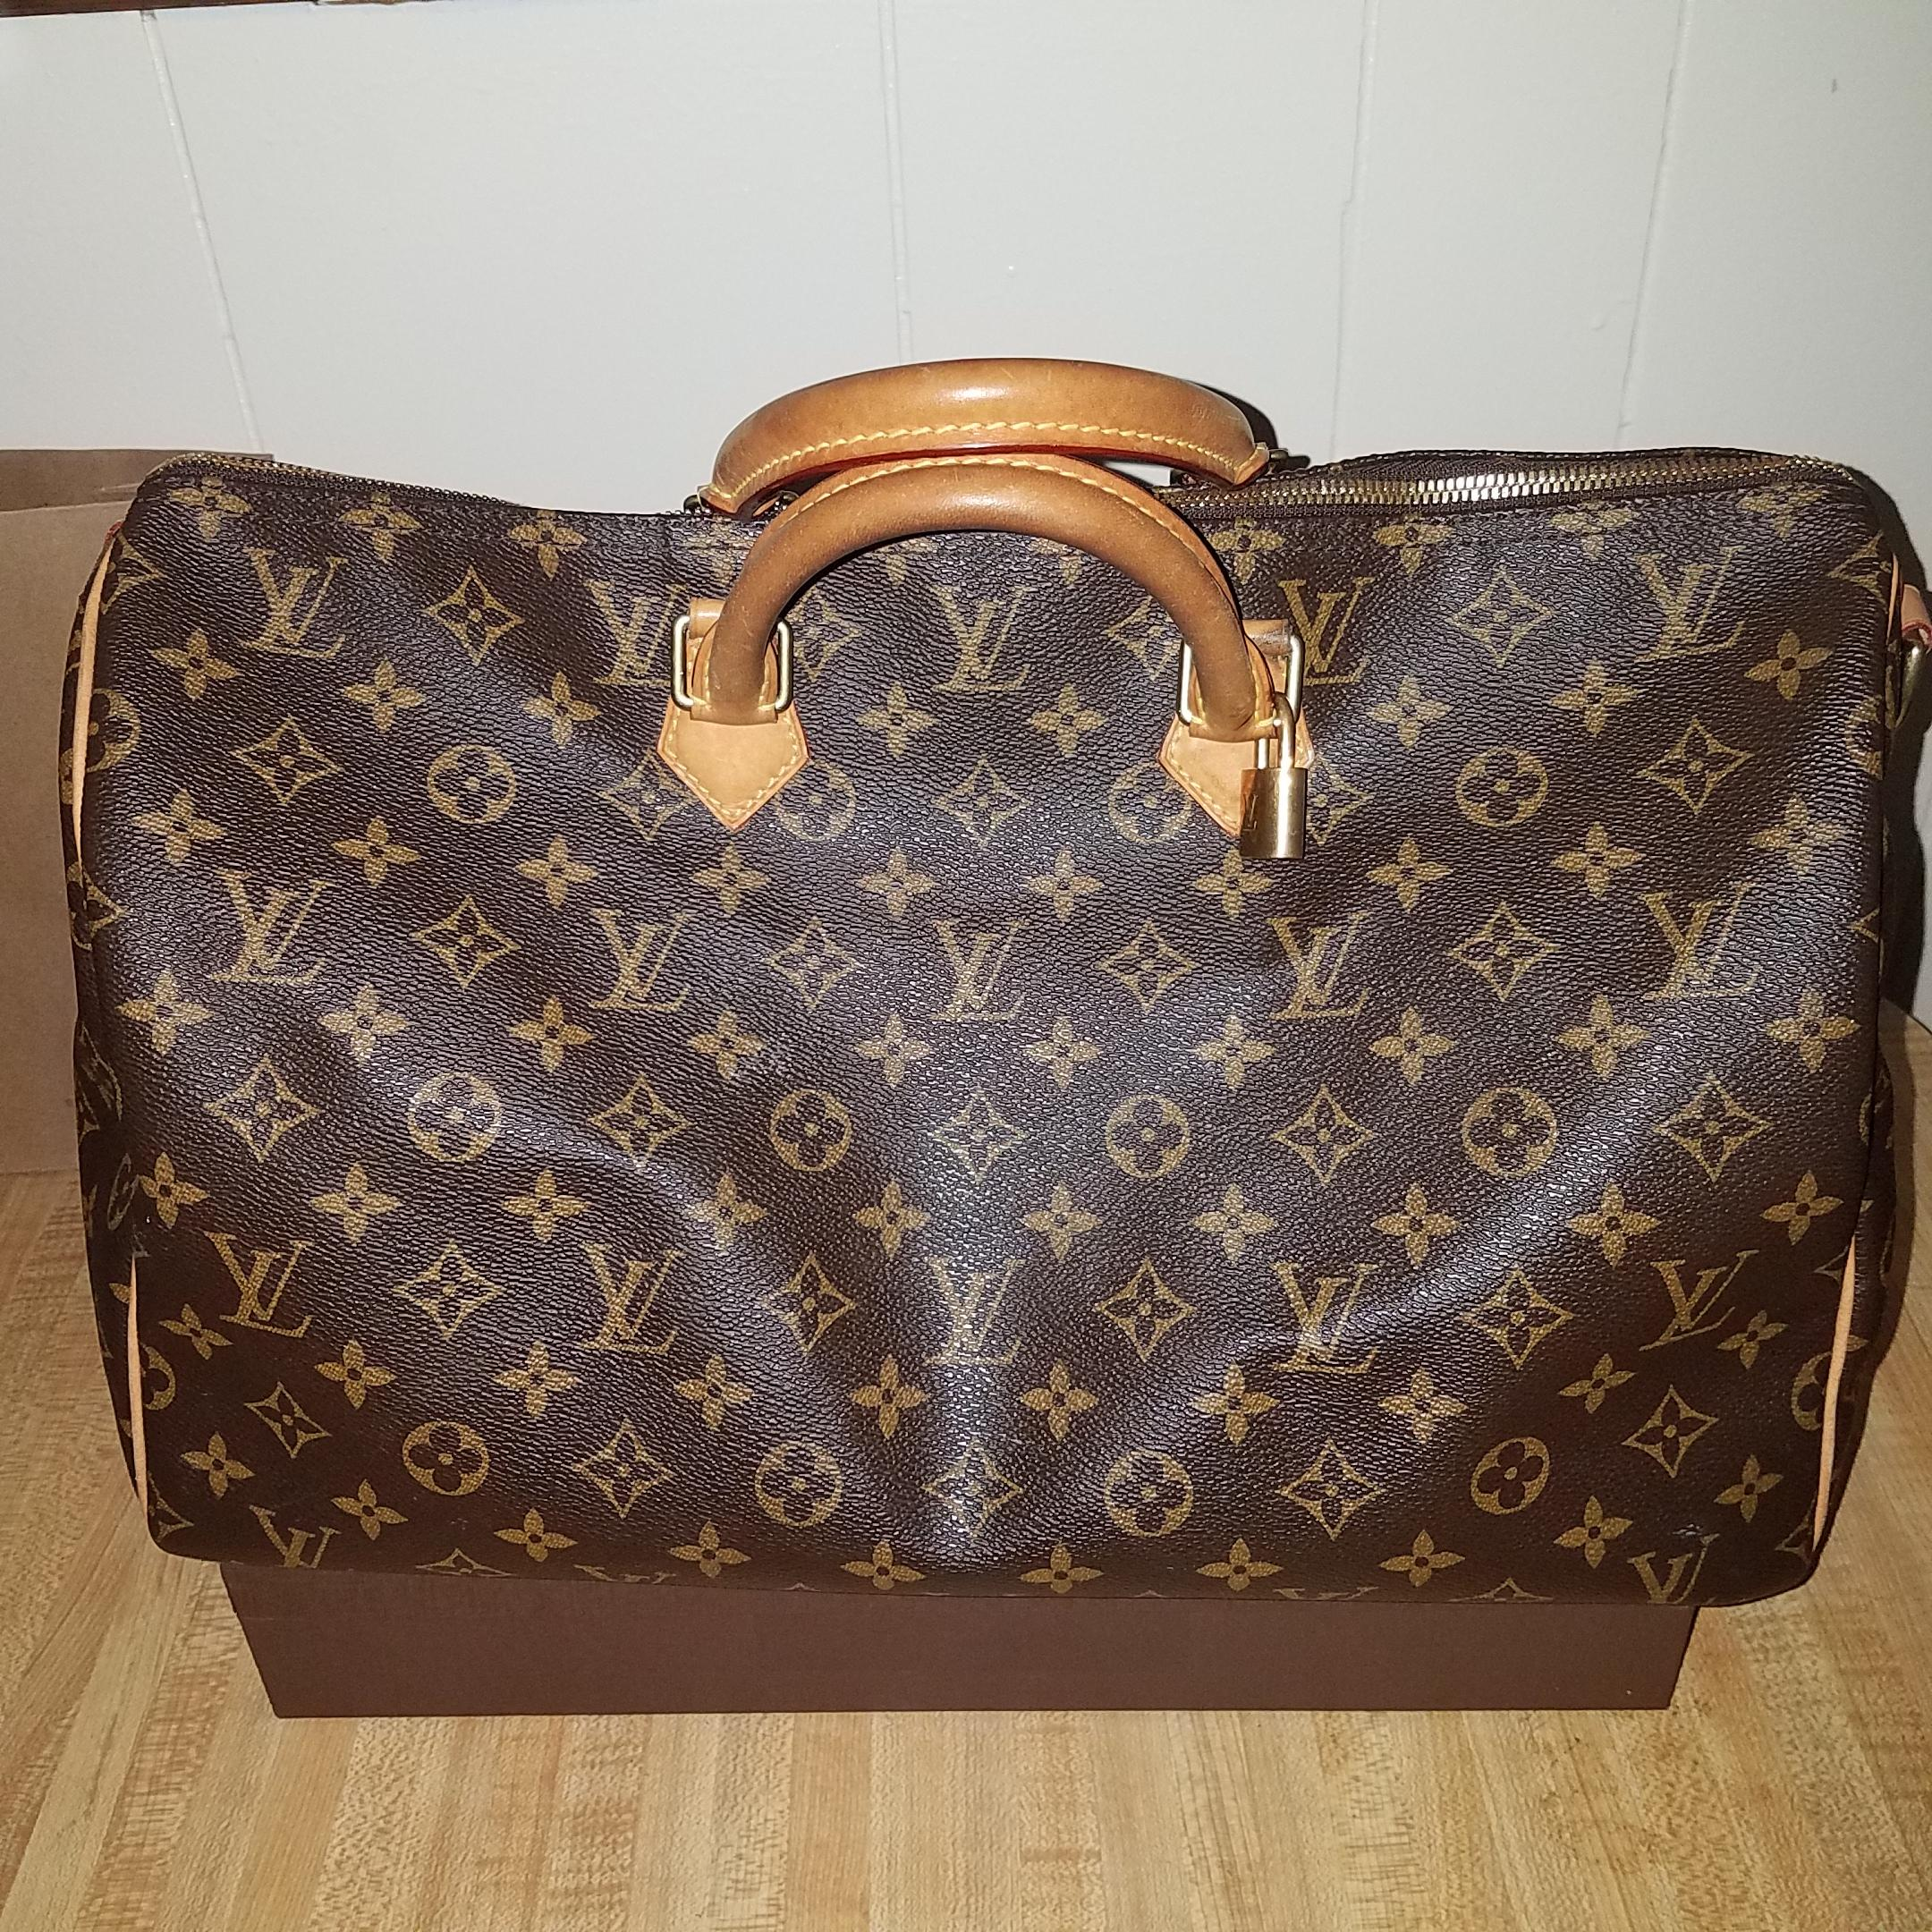 Louis Vuitton Monogram Speedy 40 Top Handle Satchel Handbag gKBTyXftg